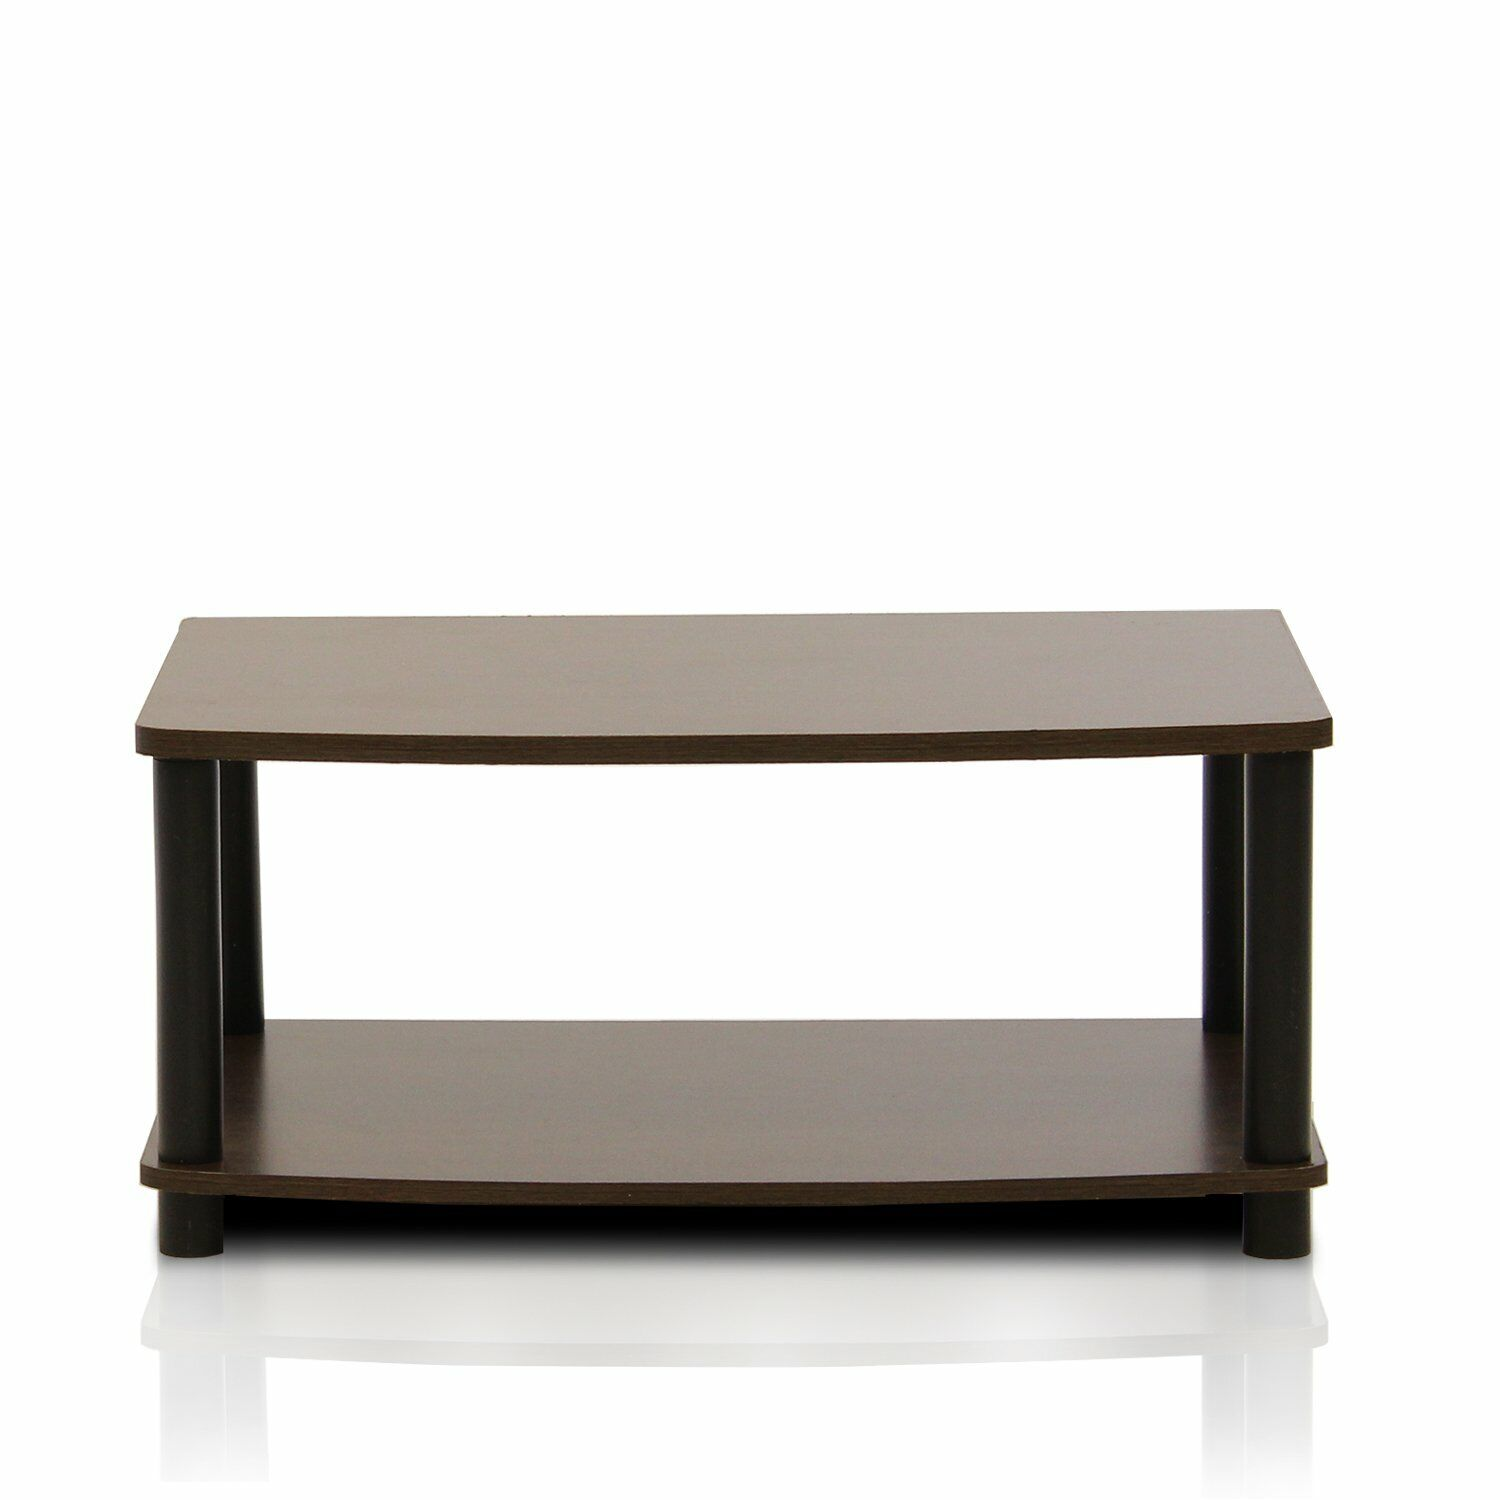 Furinno Turn-N-Tube No-Tools 2-Tier Elevated TV Stand for fo